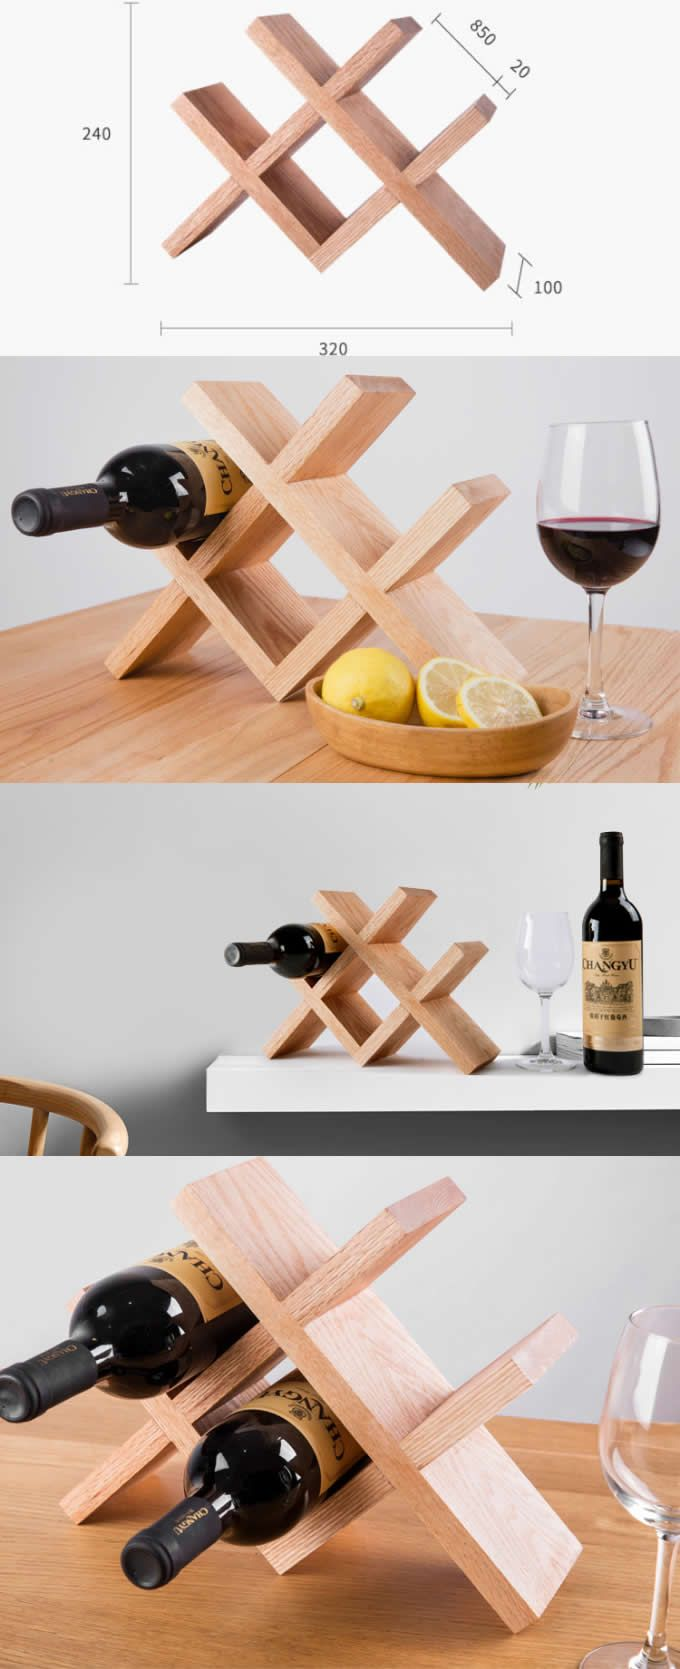 Wooden Bottle Rack Black Walnut Wooden Wine Bottle Holder Storage Rack Handmade Wood